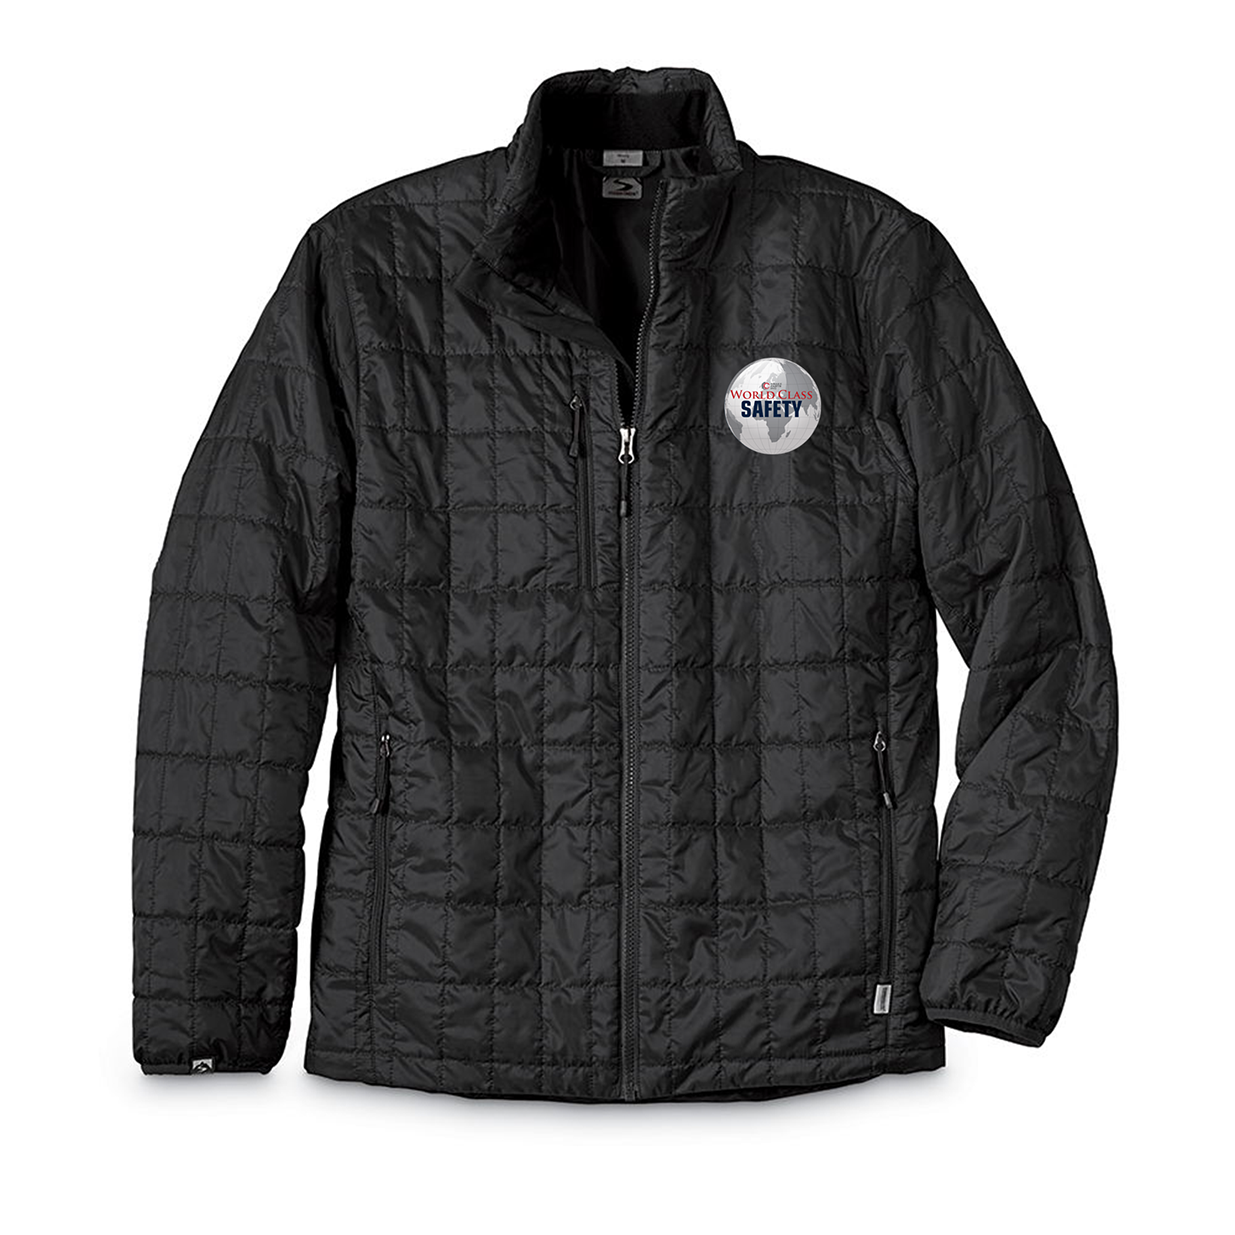 Storm Creek 3140 - Men's Thermolite Travelpack Jacket 'Will'